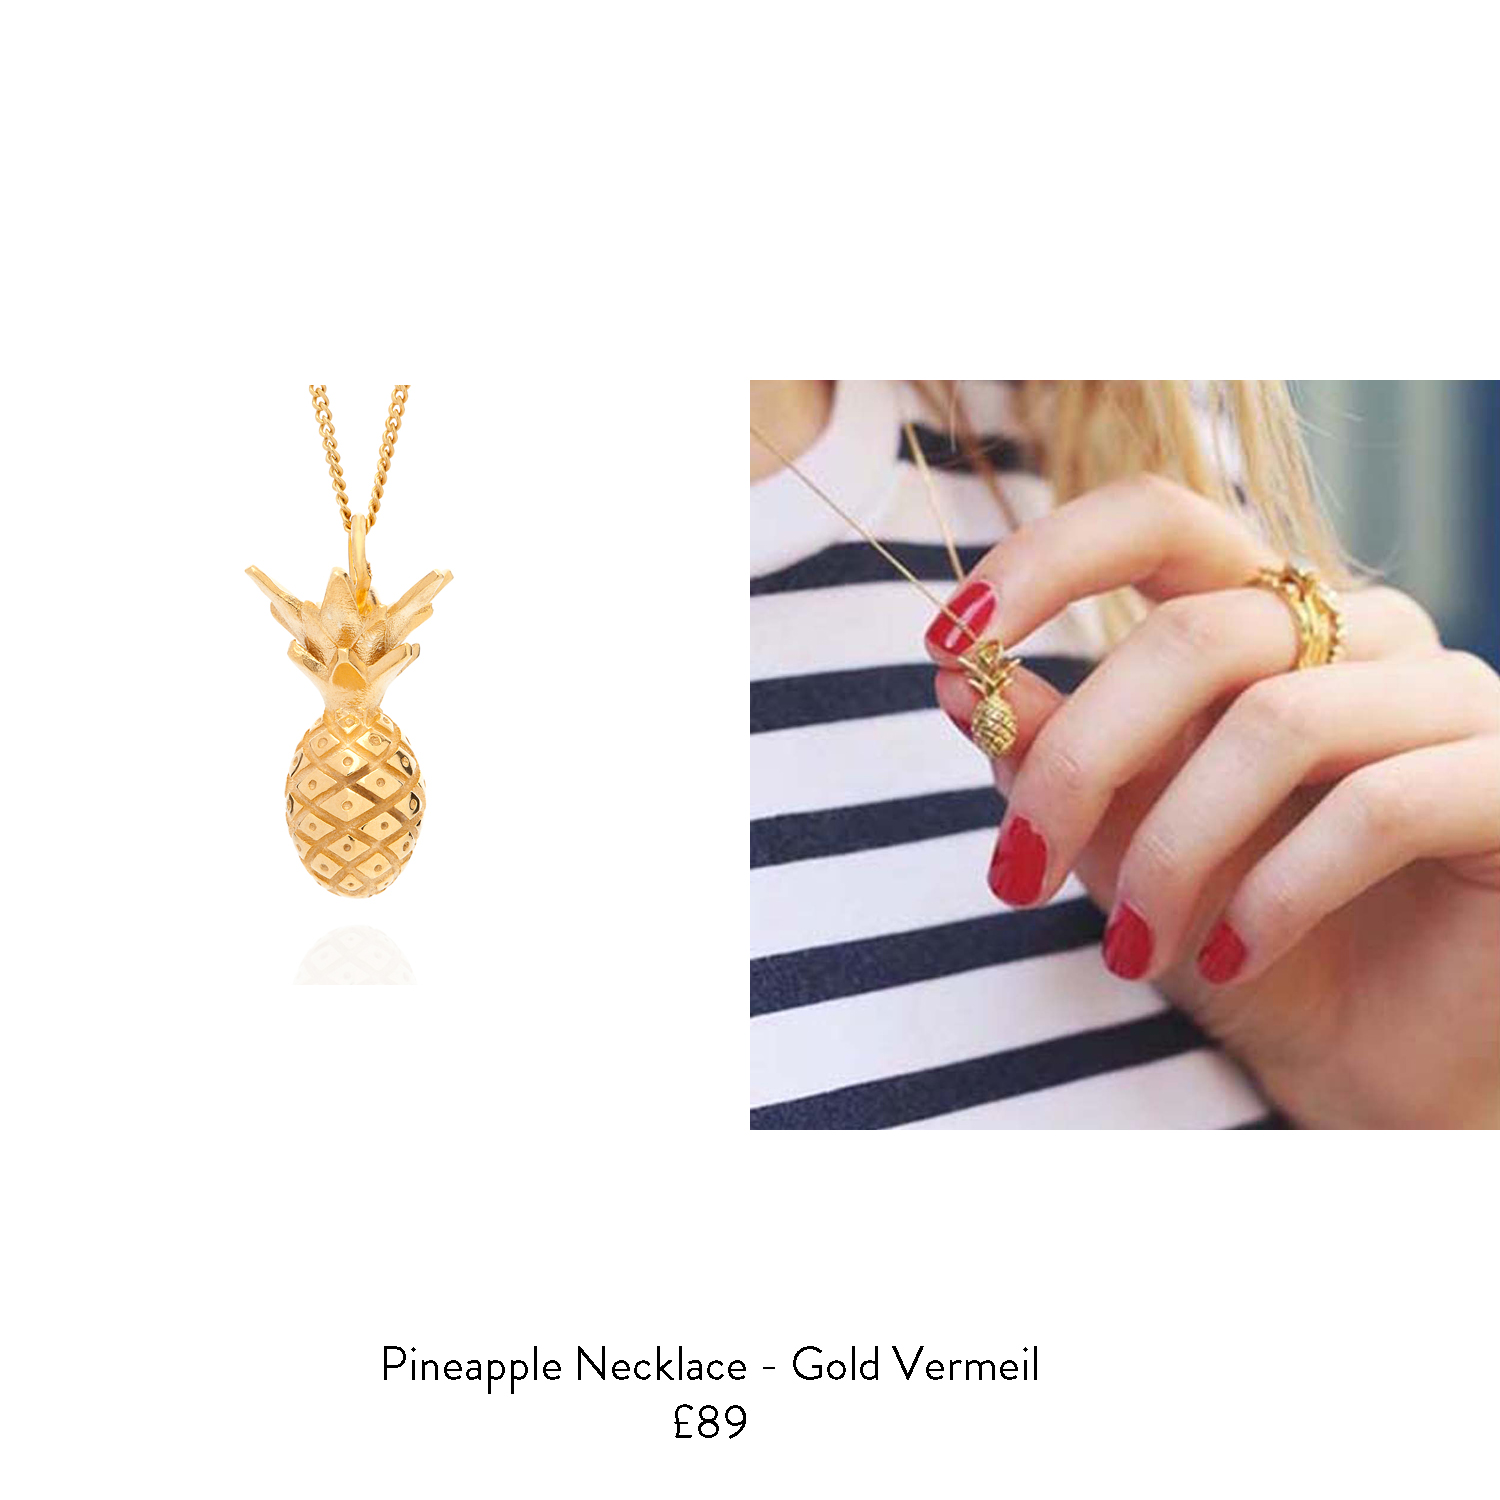 40th birthday girft ideas for her gold pineapple necklace